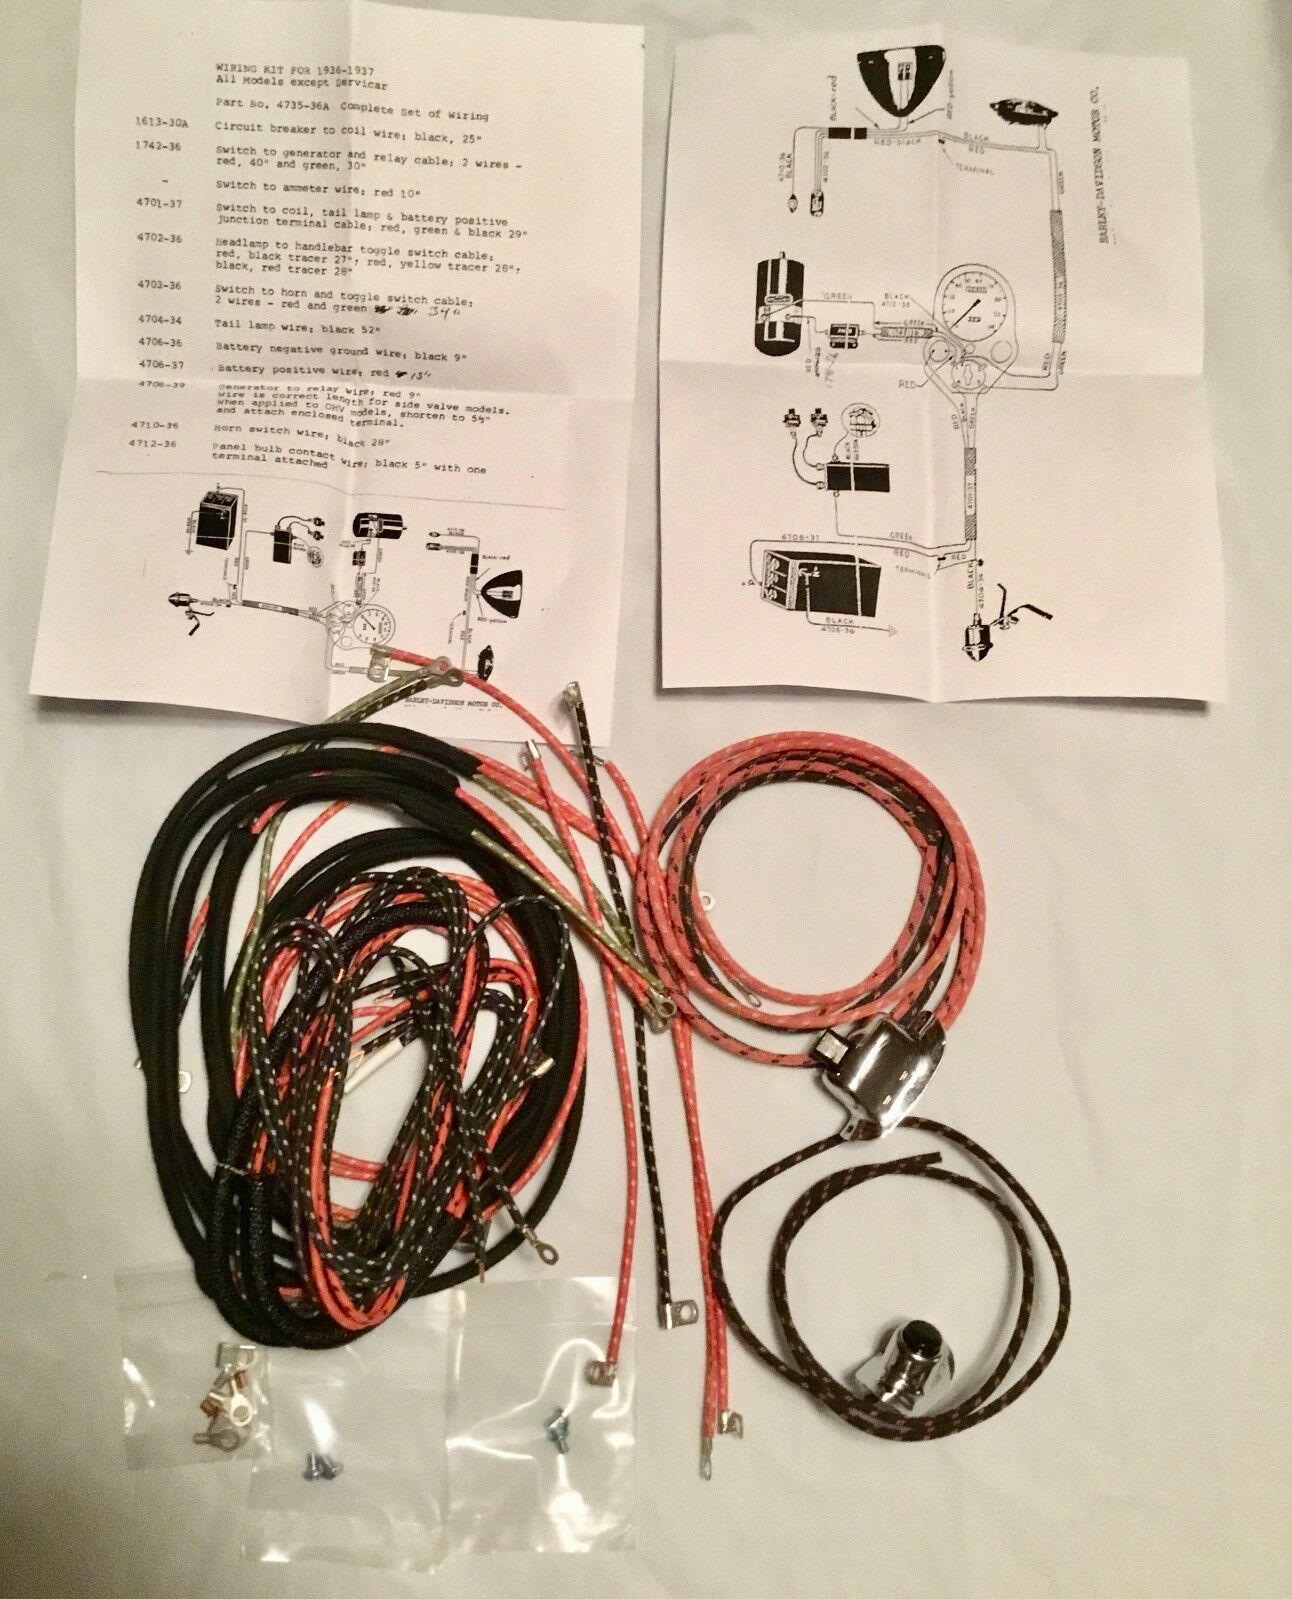 Harley 4735-36 1936-37 Knucklehead UL W Wiring Harness Kit W/ Wired on harley rolling chassis kits, harley exhaust kits, harley front end kits, harley gas tank kits, harley oil filter kits, harley cable kits, harley decal kits, harley swingarm kits, harley air cleaner kits, harley handlebar wiring extension kits, harley oil cooler kits, harley turbocharger kits, harley air bag kits, harley frame kits, harley supercharger kits, harley engine kits, harley radio kits, harley clutch kits,